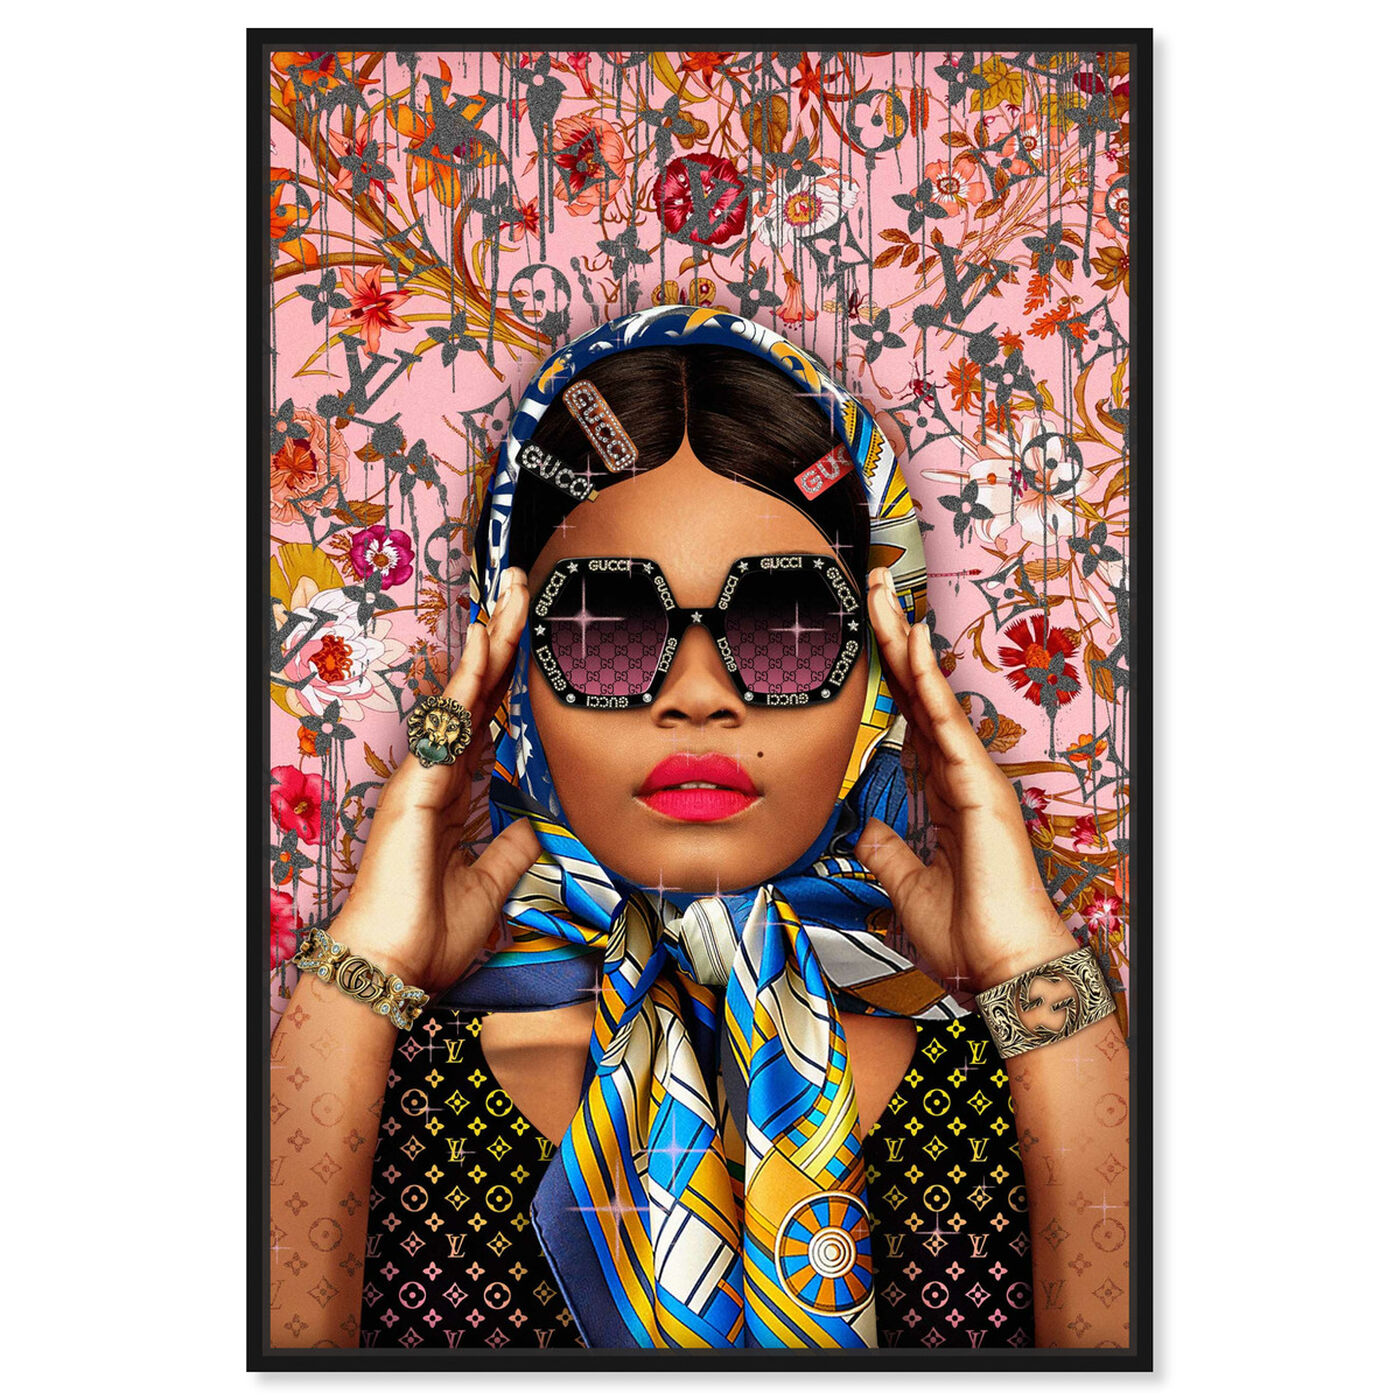 Front view of Snap a picture featuring fashion and glam and portraits art.